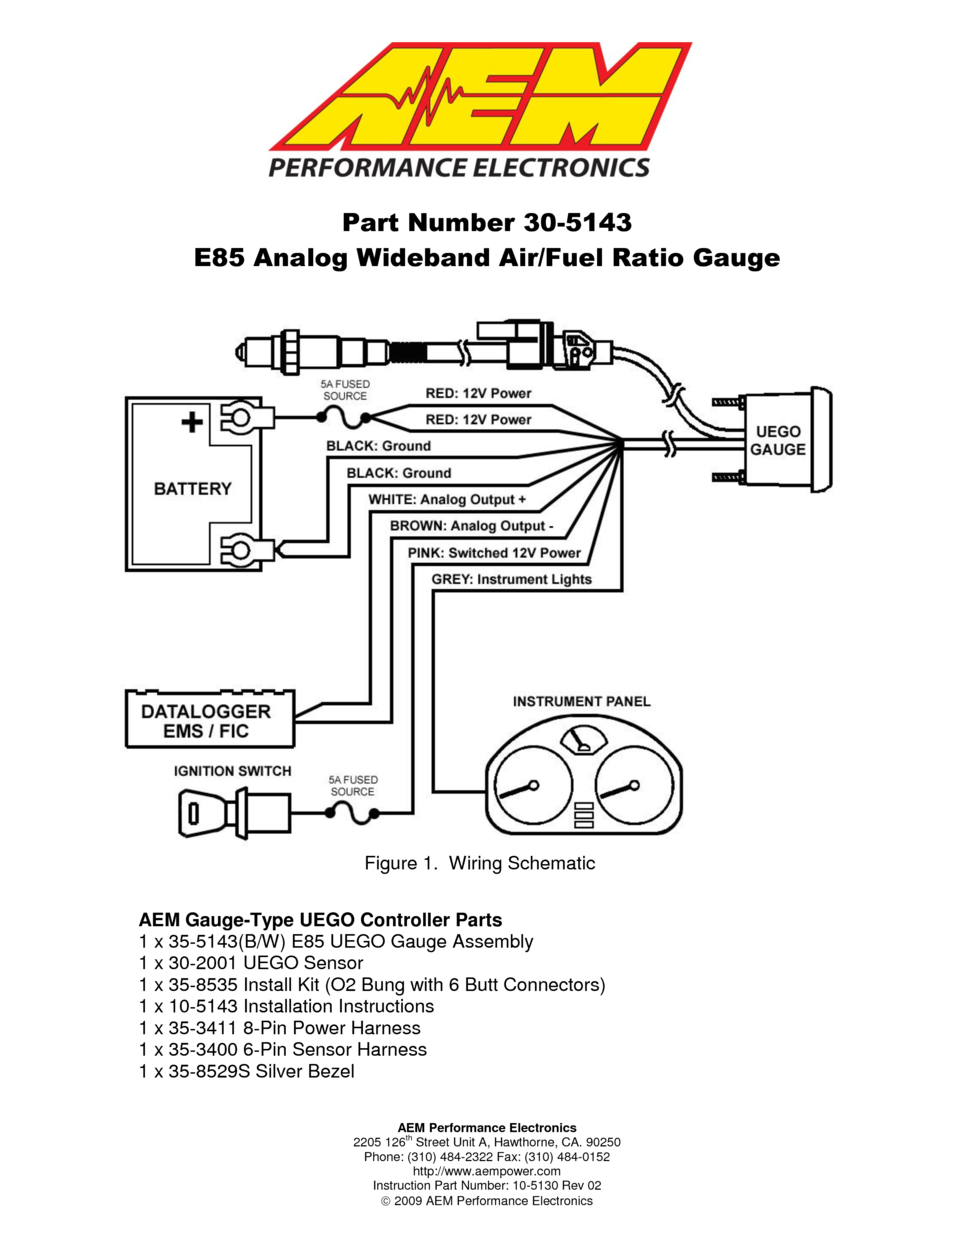 w960_analog e85 wideband uego gauge e85 afr 305143 1478598903_d 0 aem wideband wiring diagram a f sensor wiring diagram \u2022 wiring aem air fuel gauge wiring diagram at mifinder.co